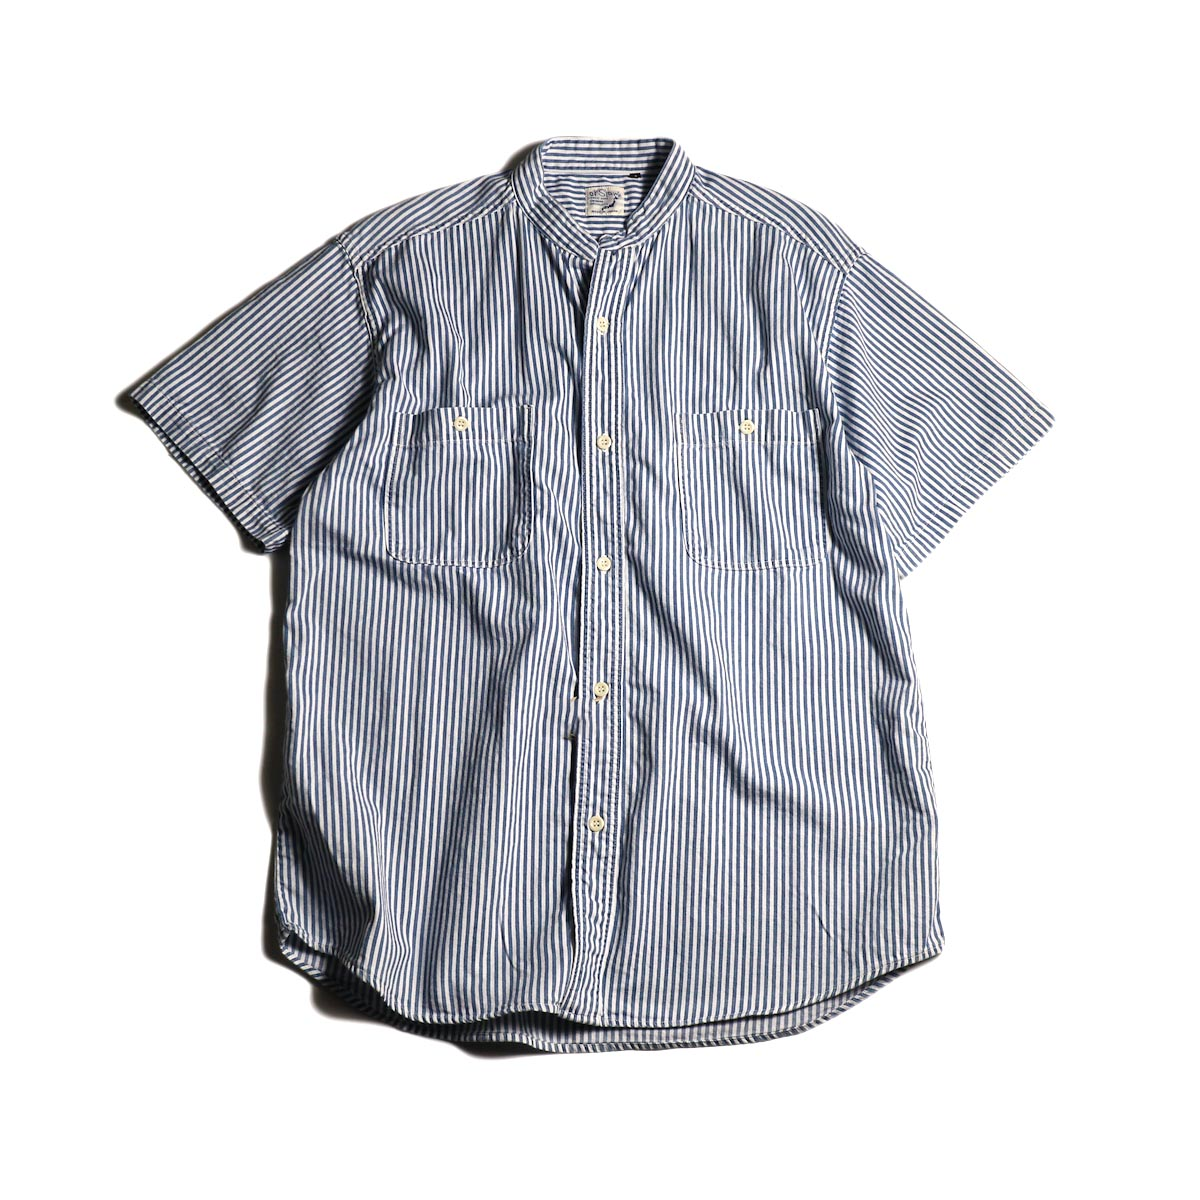 orSlow / STAND COLLAR S/S SHIRT - HICKORY